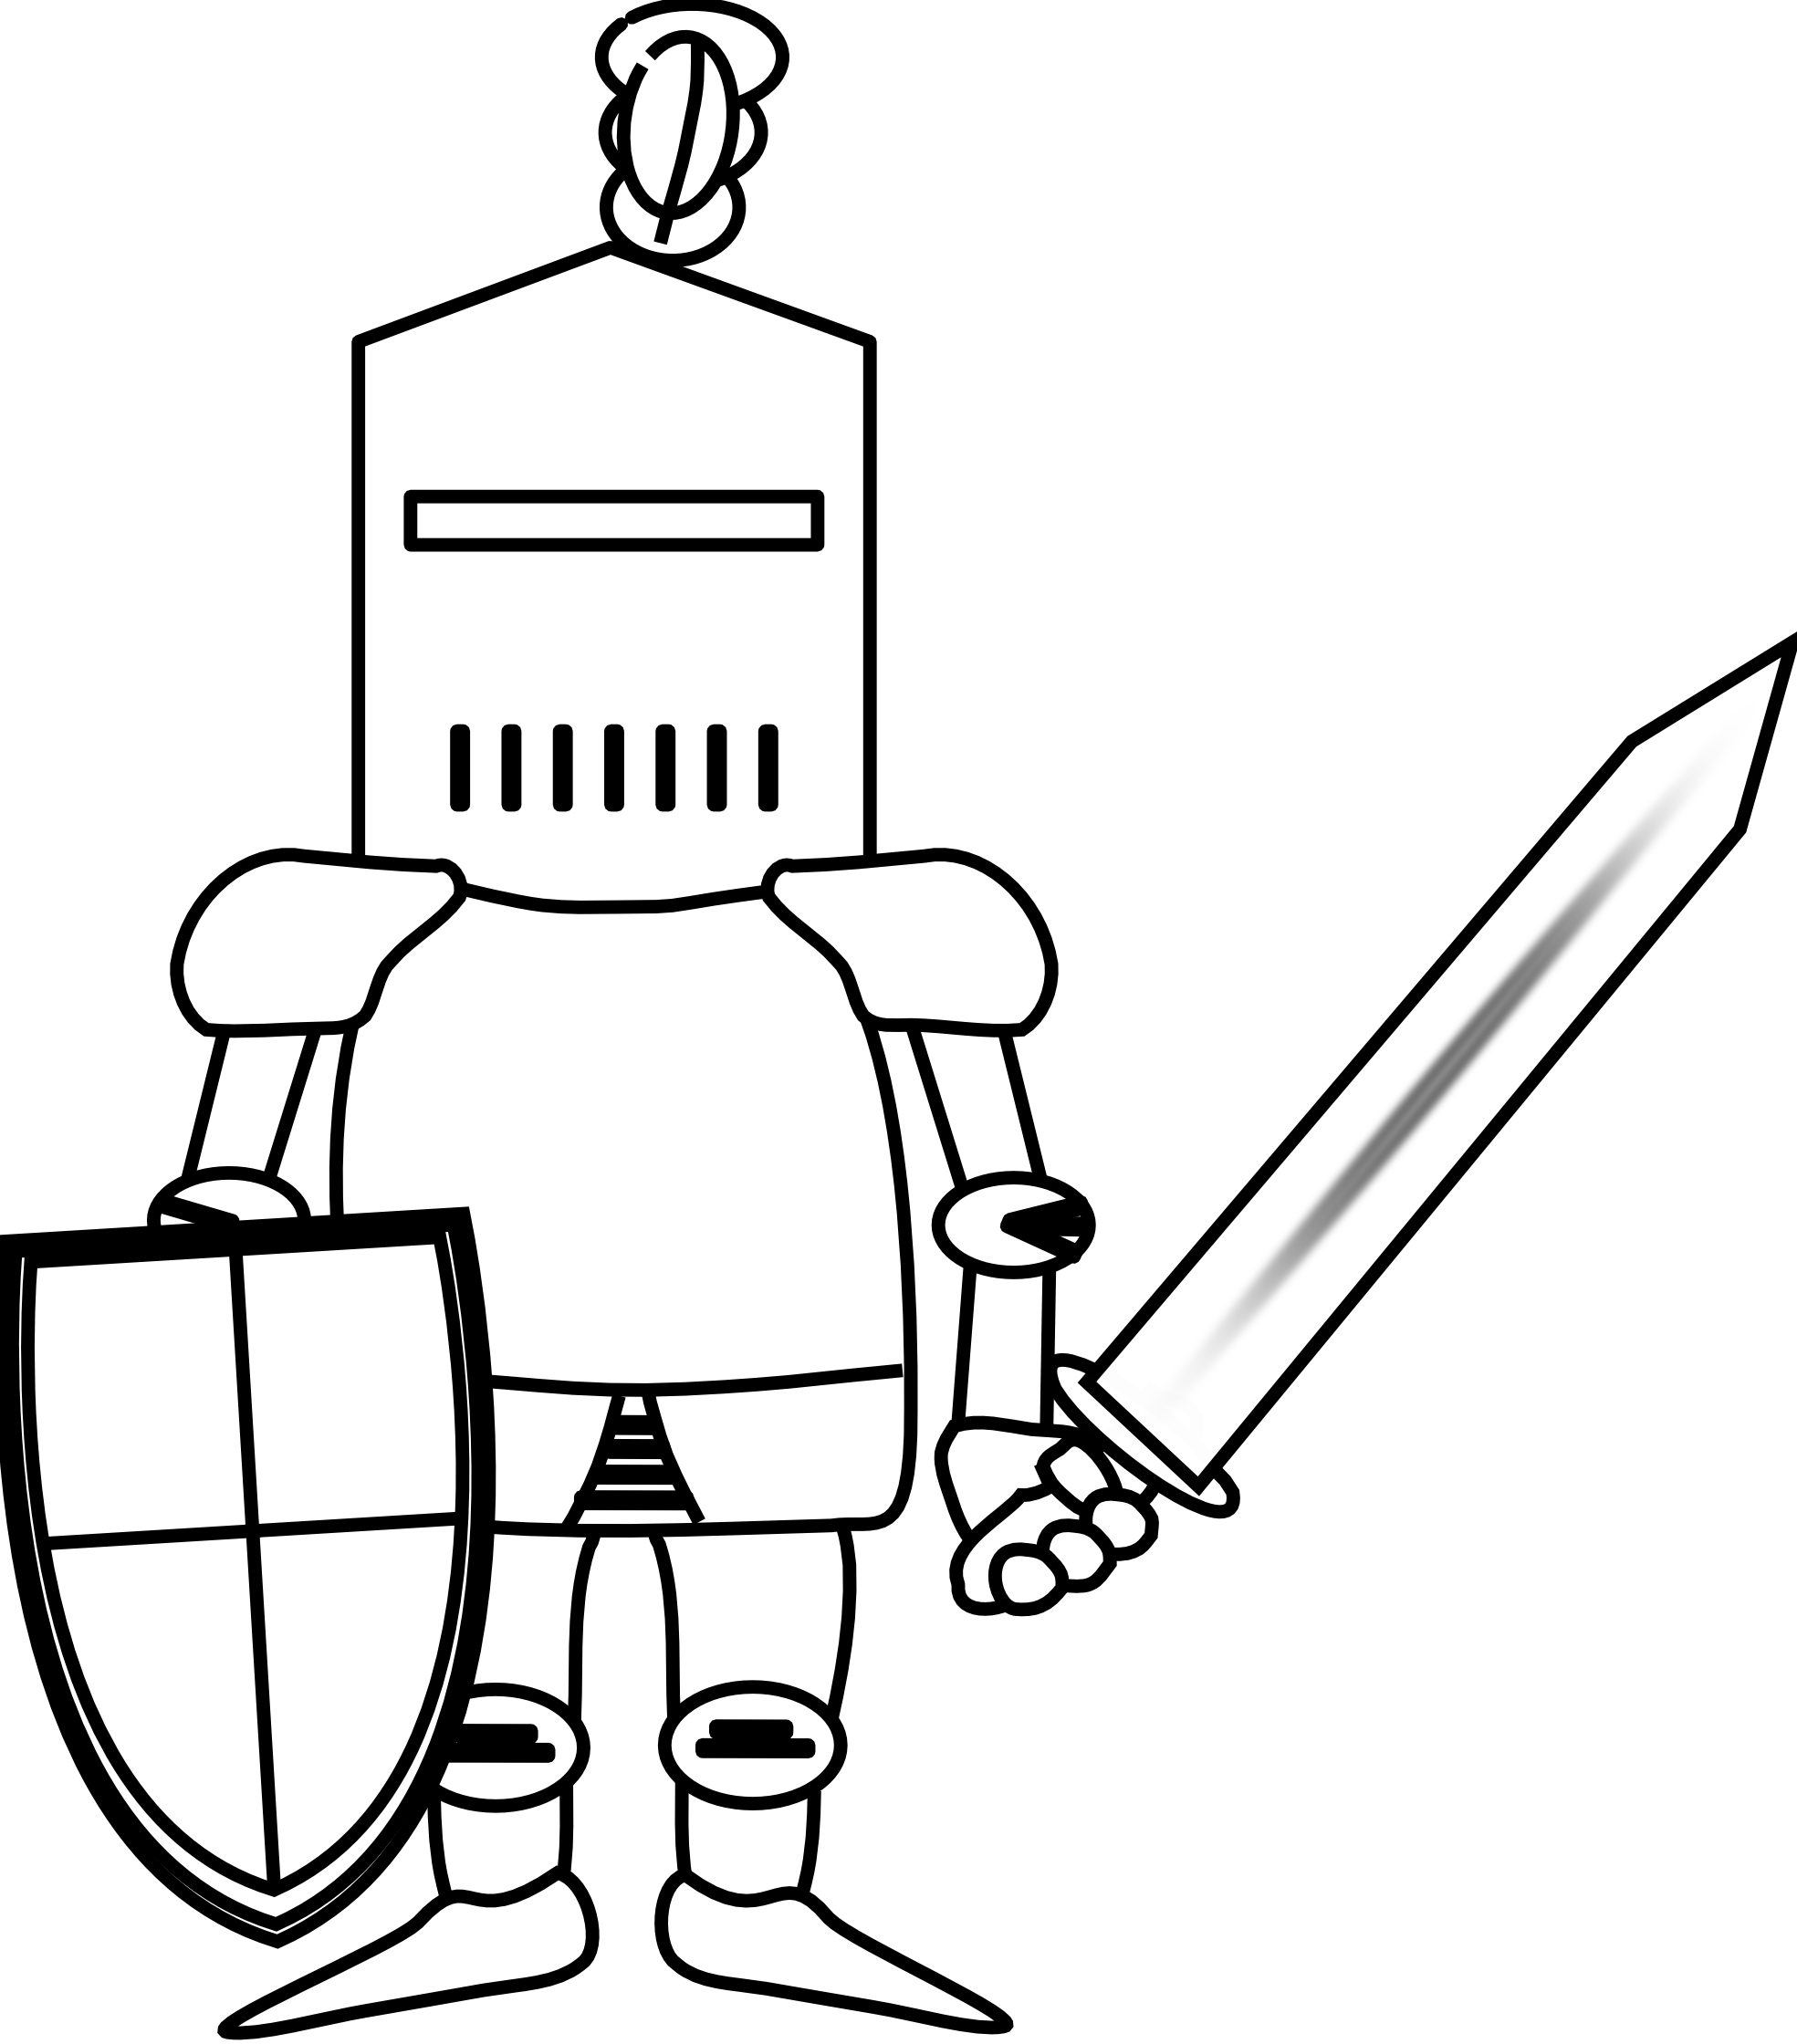 Drawing knight outline. Collection of high